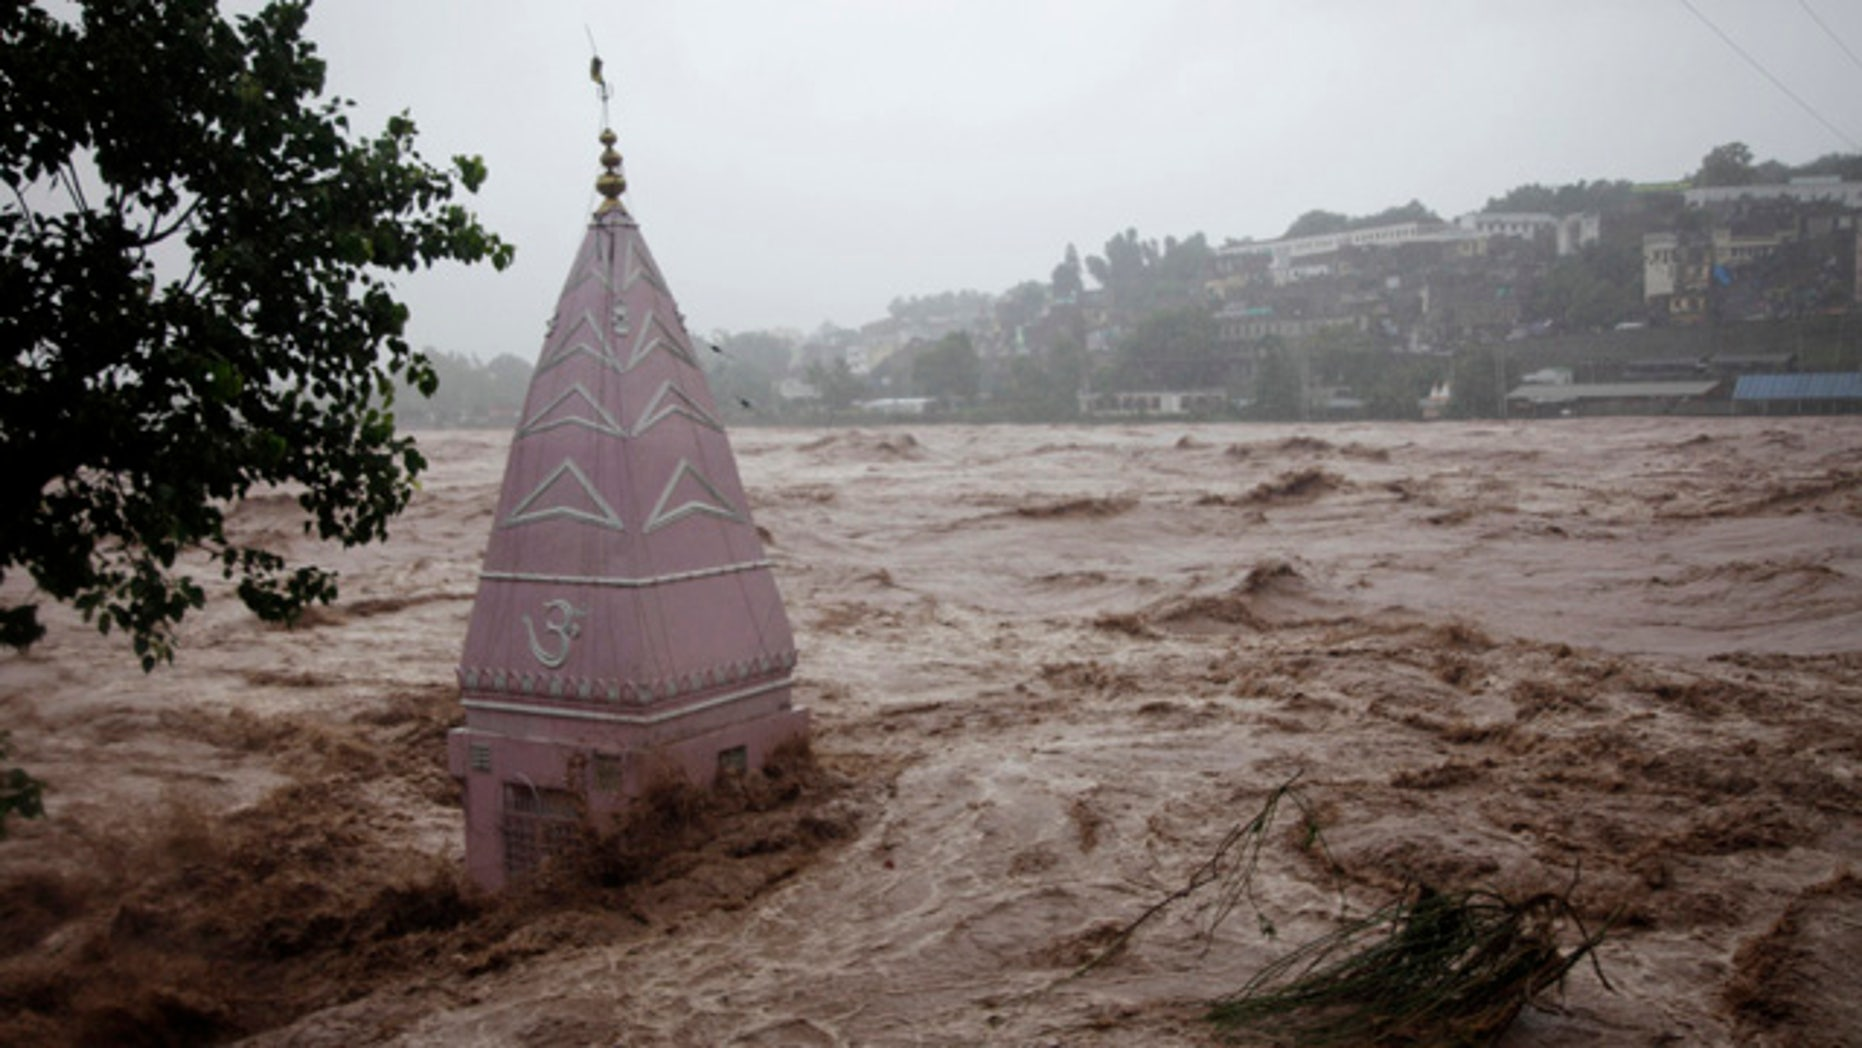 September 6, 2014: A temple is partially submerged in floodwaters in Jammu, India. (AP Photo/Channi Anand)